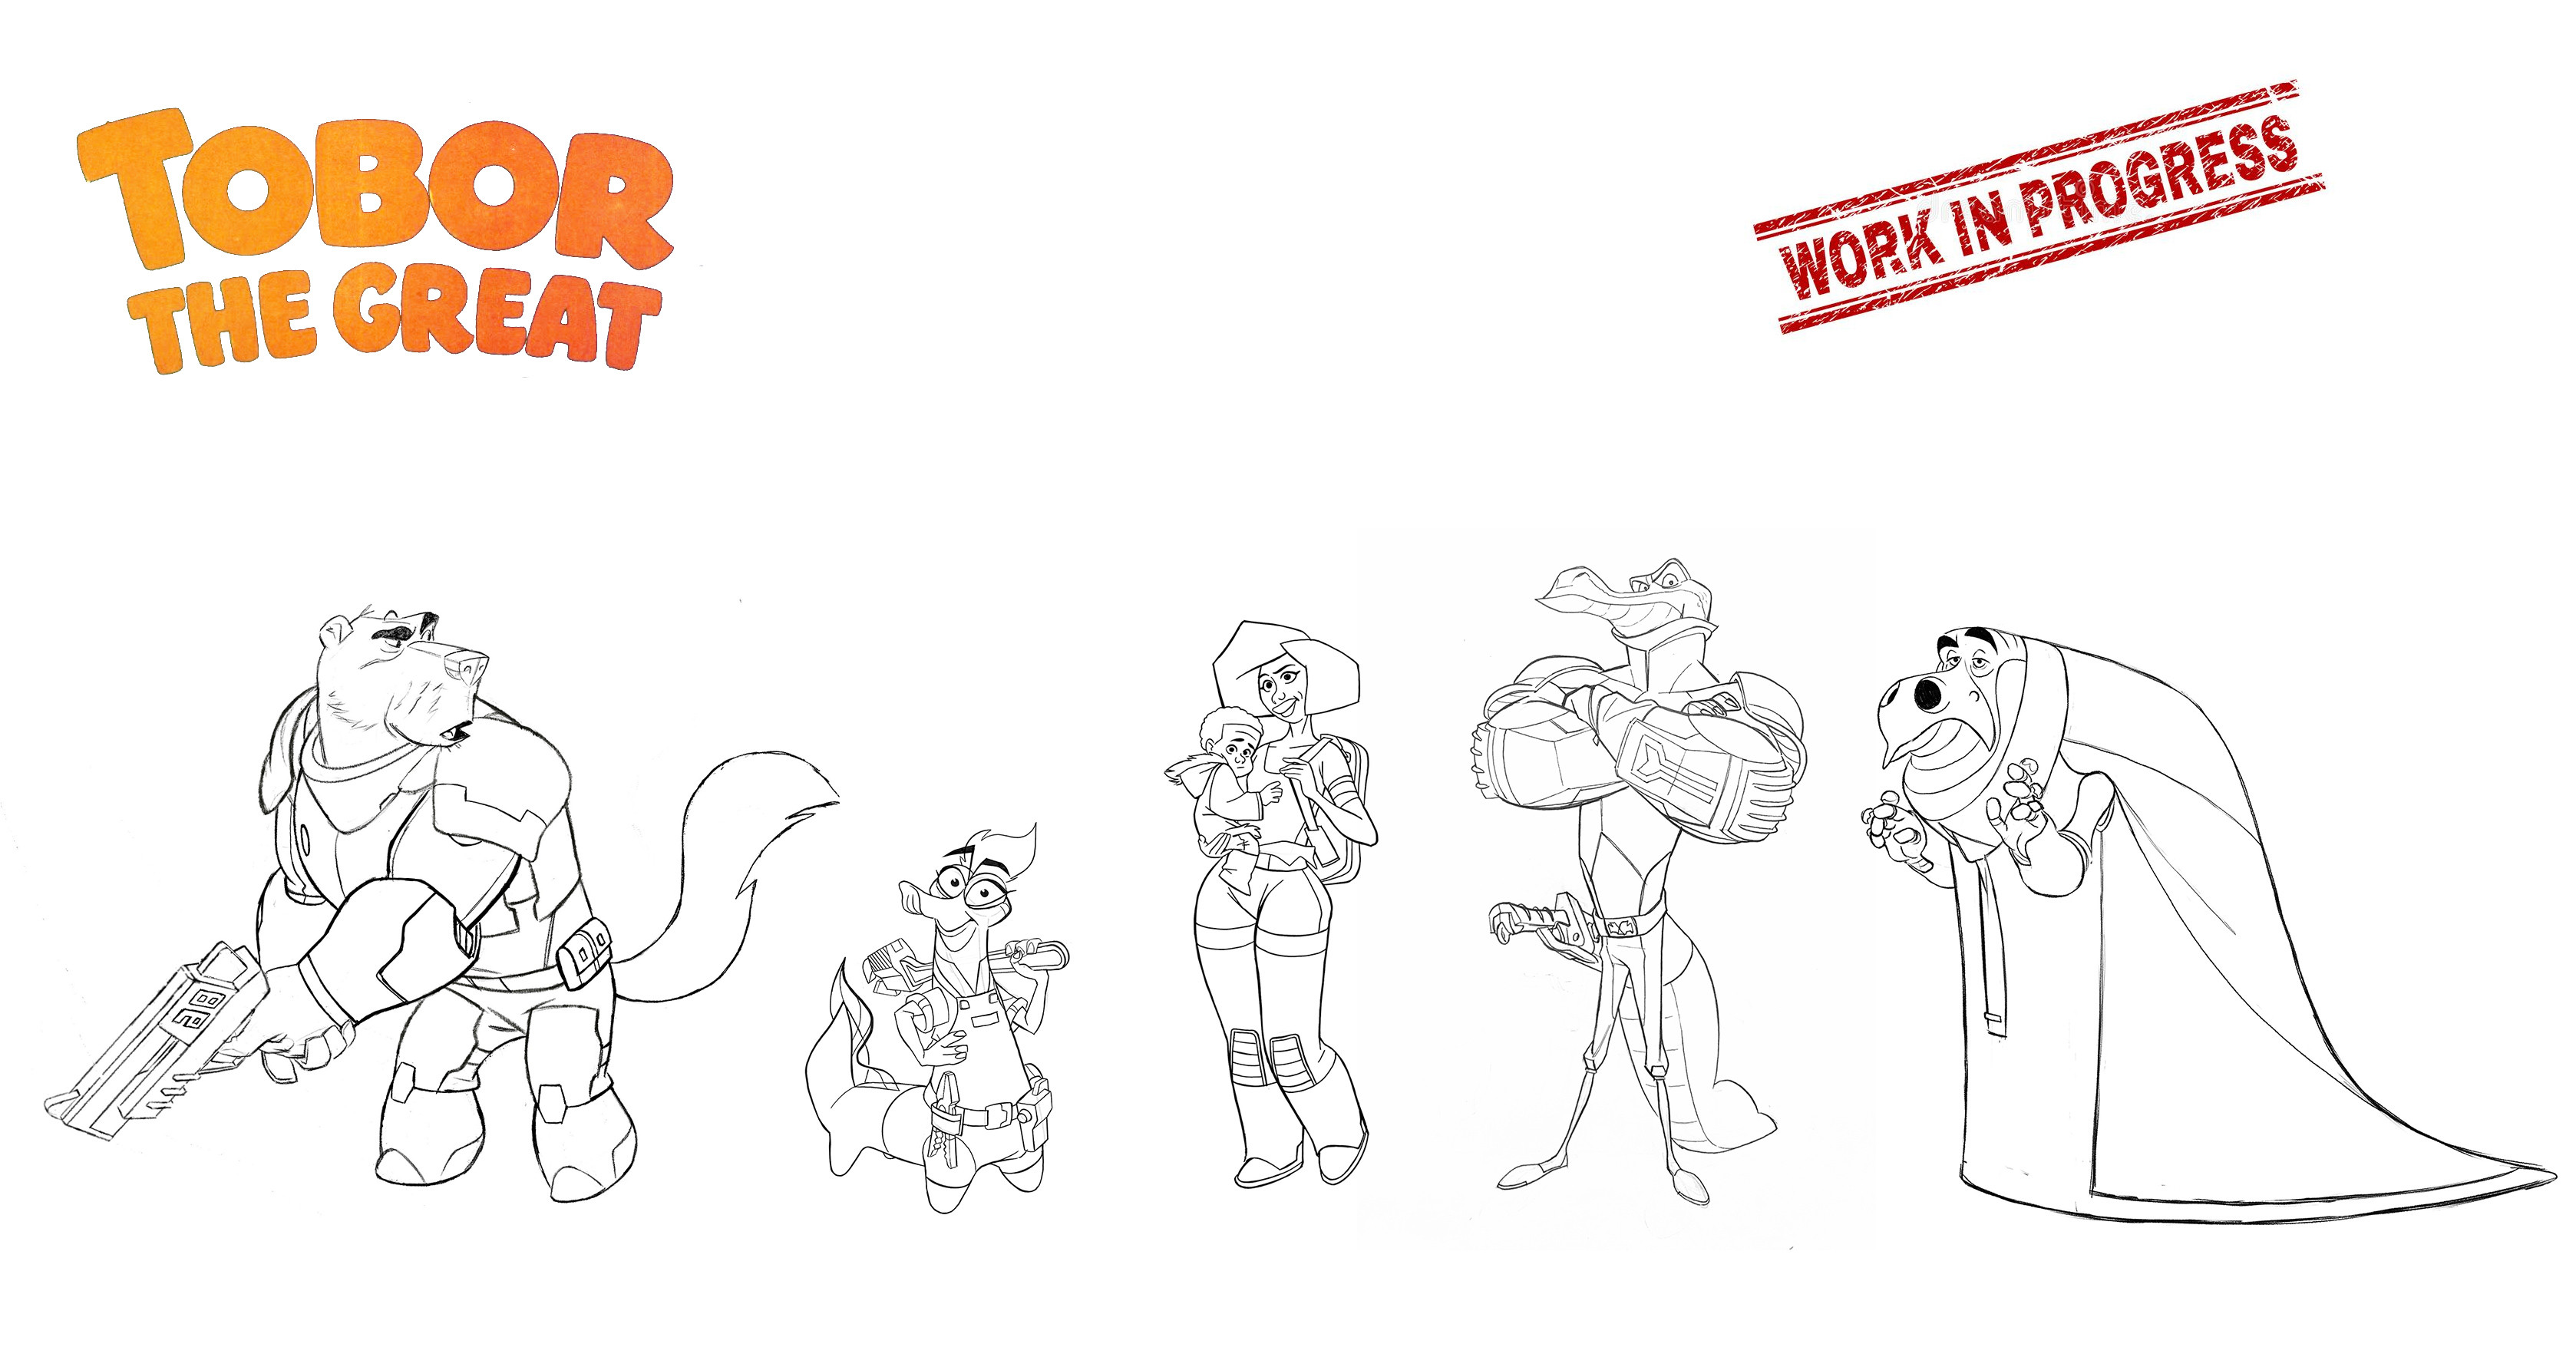 Still working on this SciFi line-up.